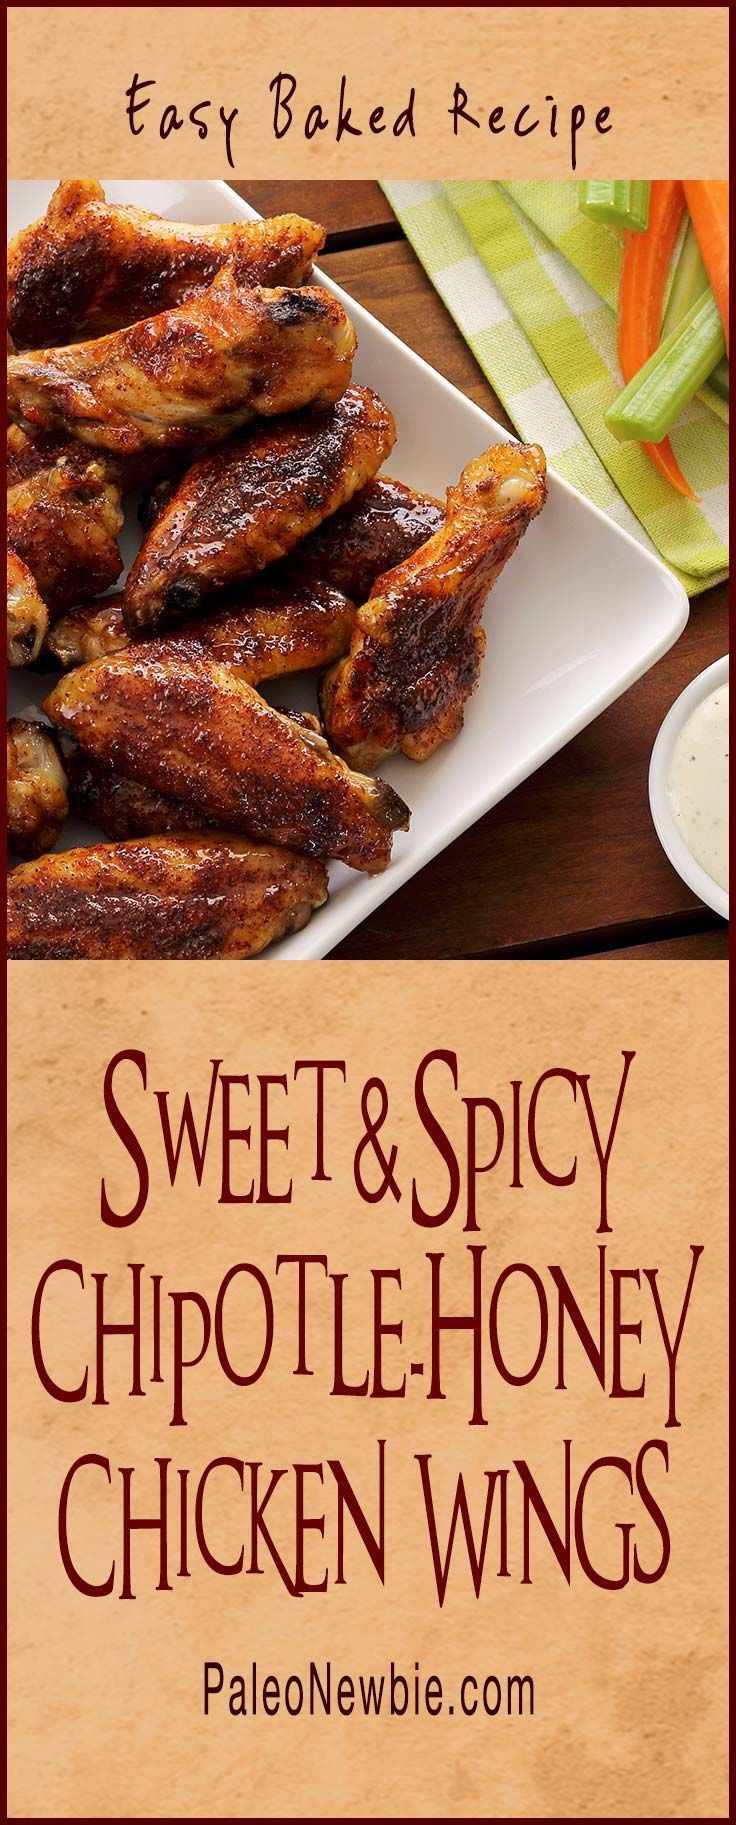 Easy, healthy, homemade buffalo-style chicken wings…my special chipotle seasoning mix – and honey – make these succulent wings so good! No frying – just baked!  #glutenfree #chickenwings